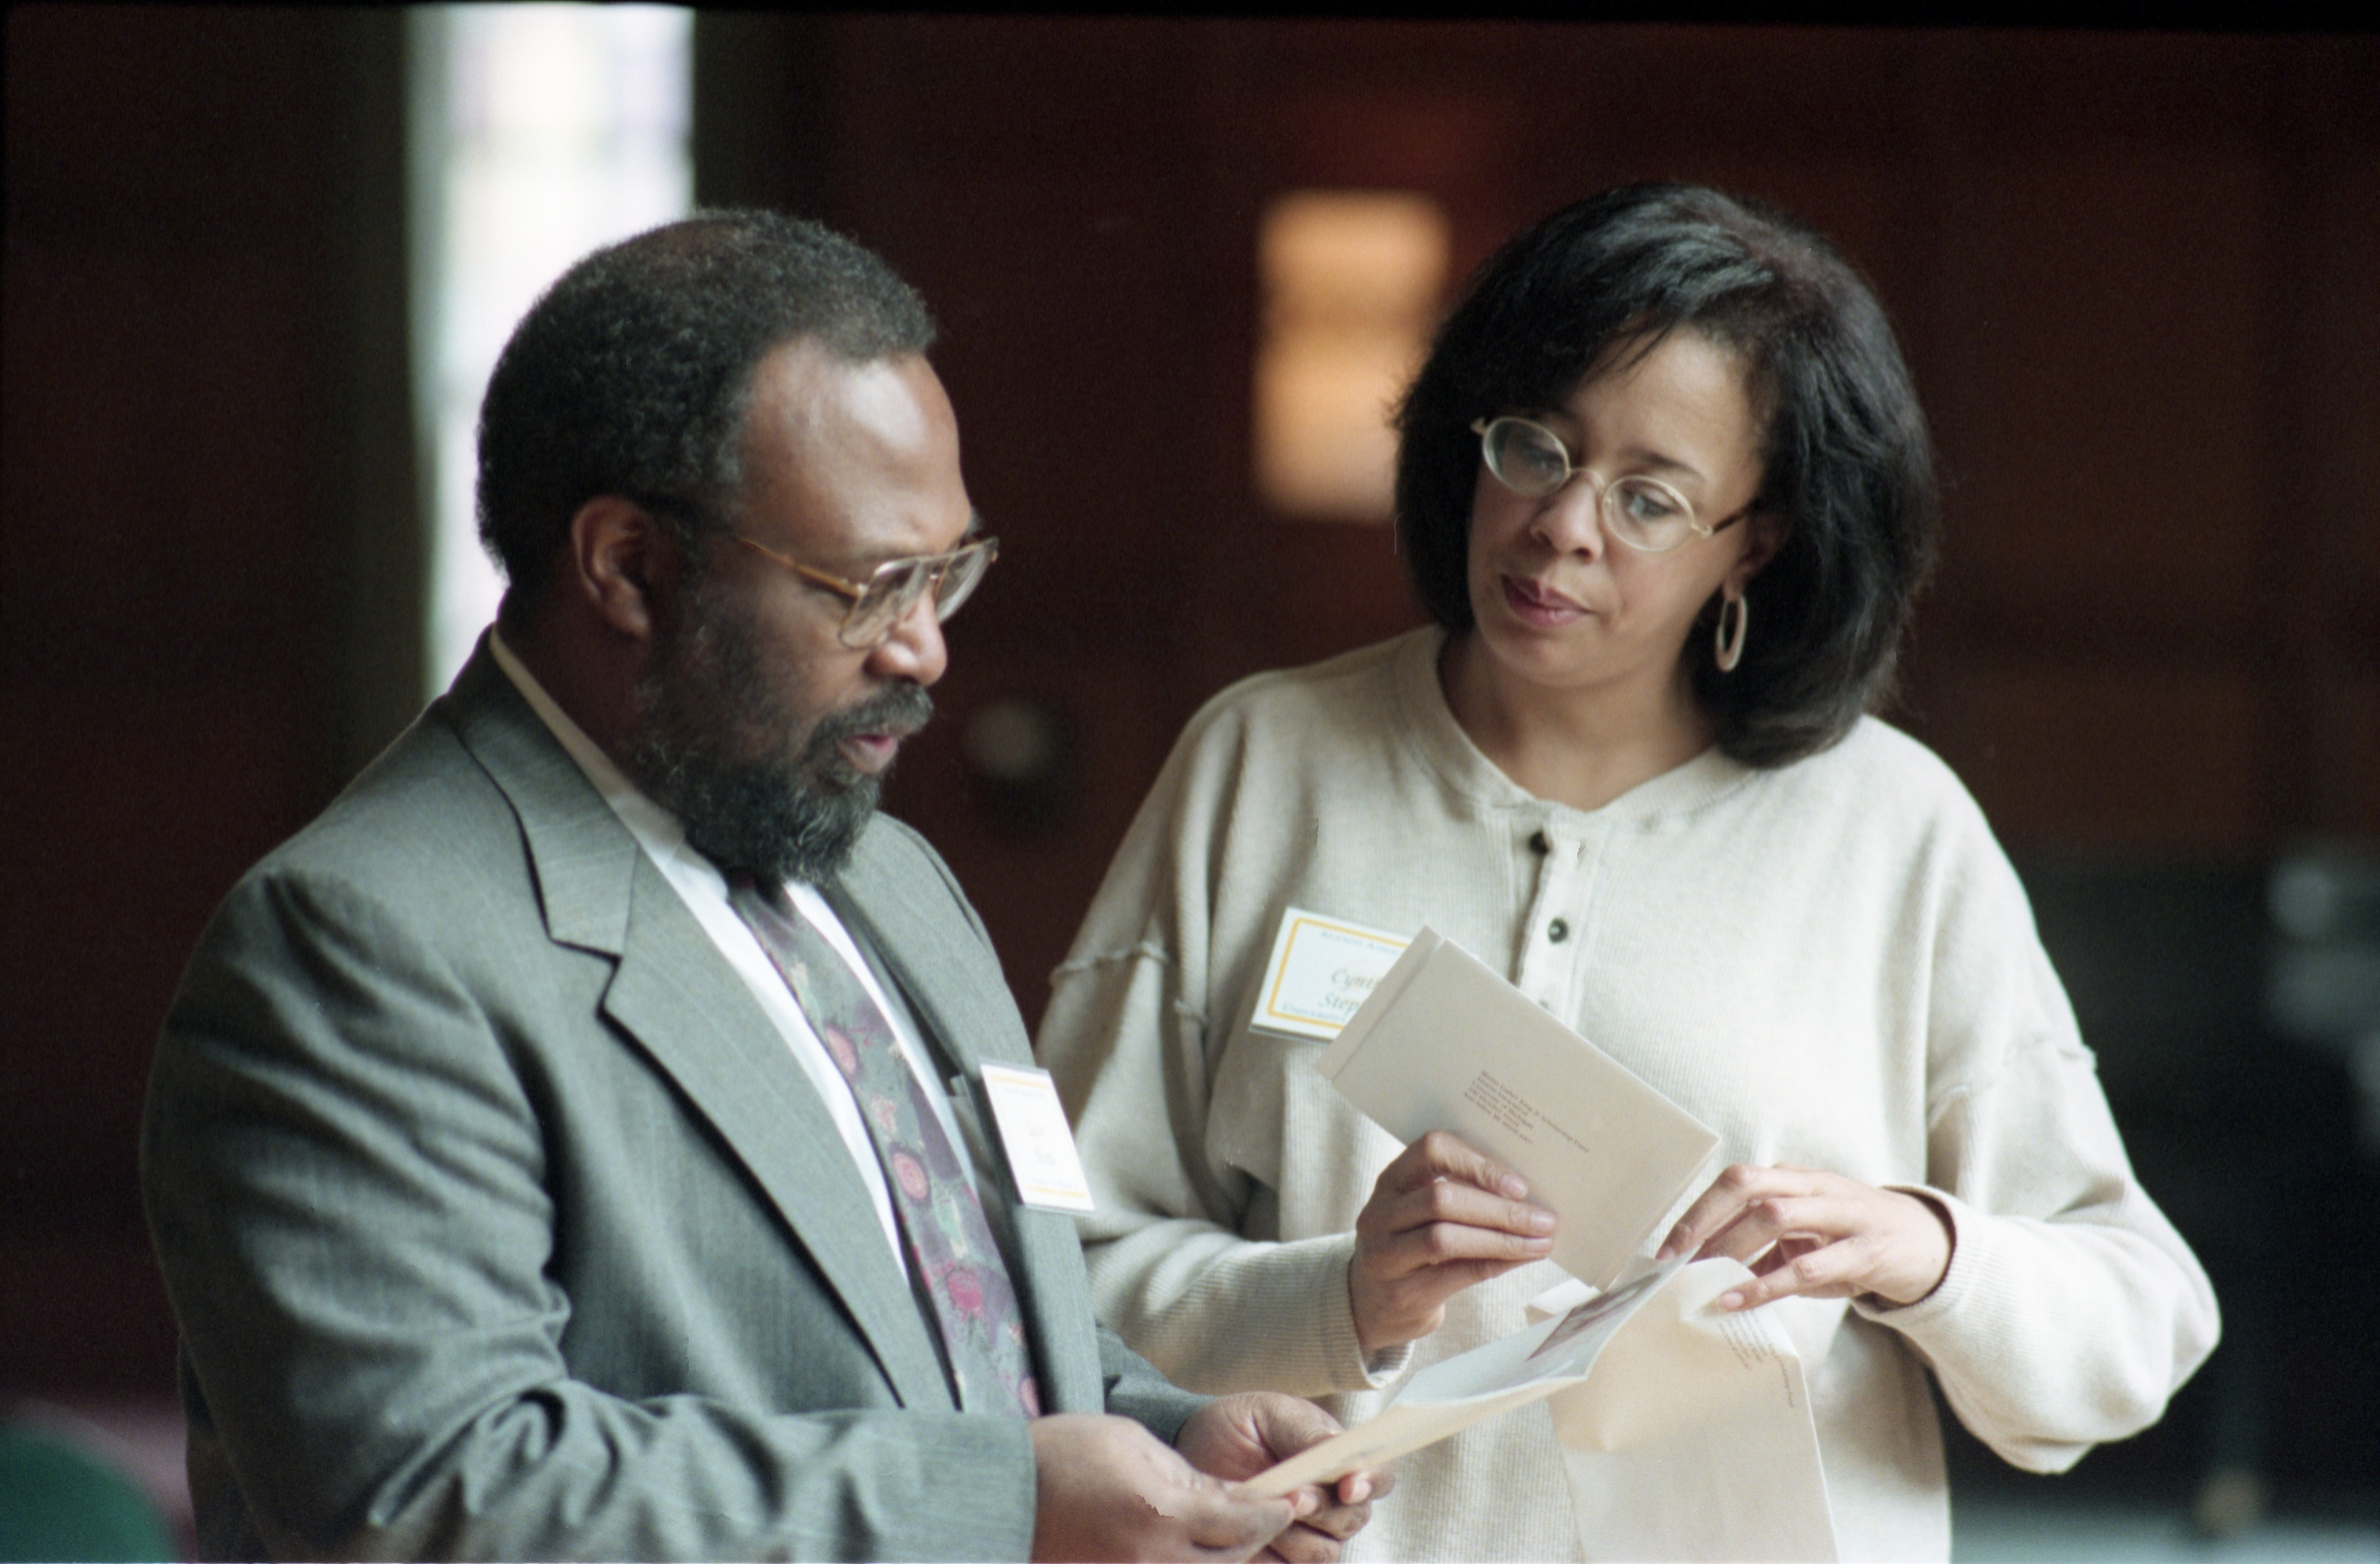 Lester Monts & Cynthia Stevens At The 25th Anniversary Of The Black Action Movement Strike, April 2, 1995 image